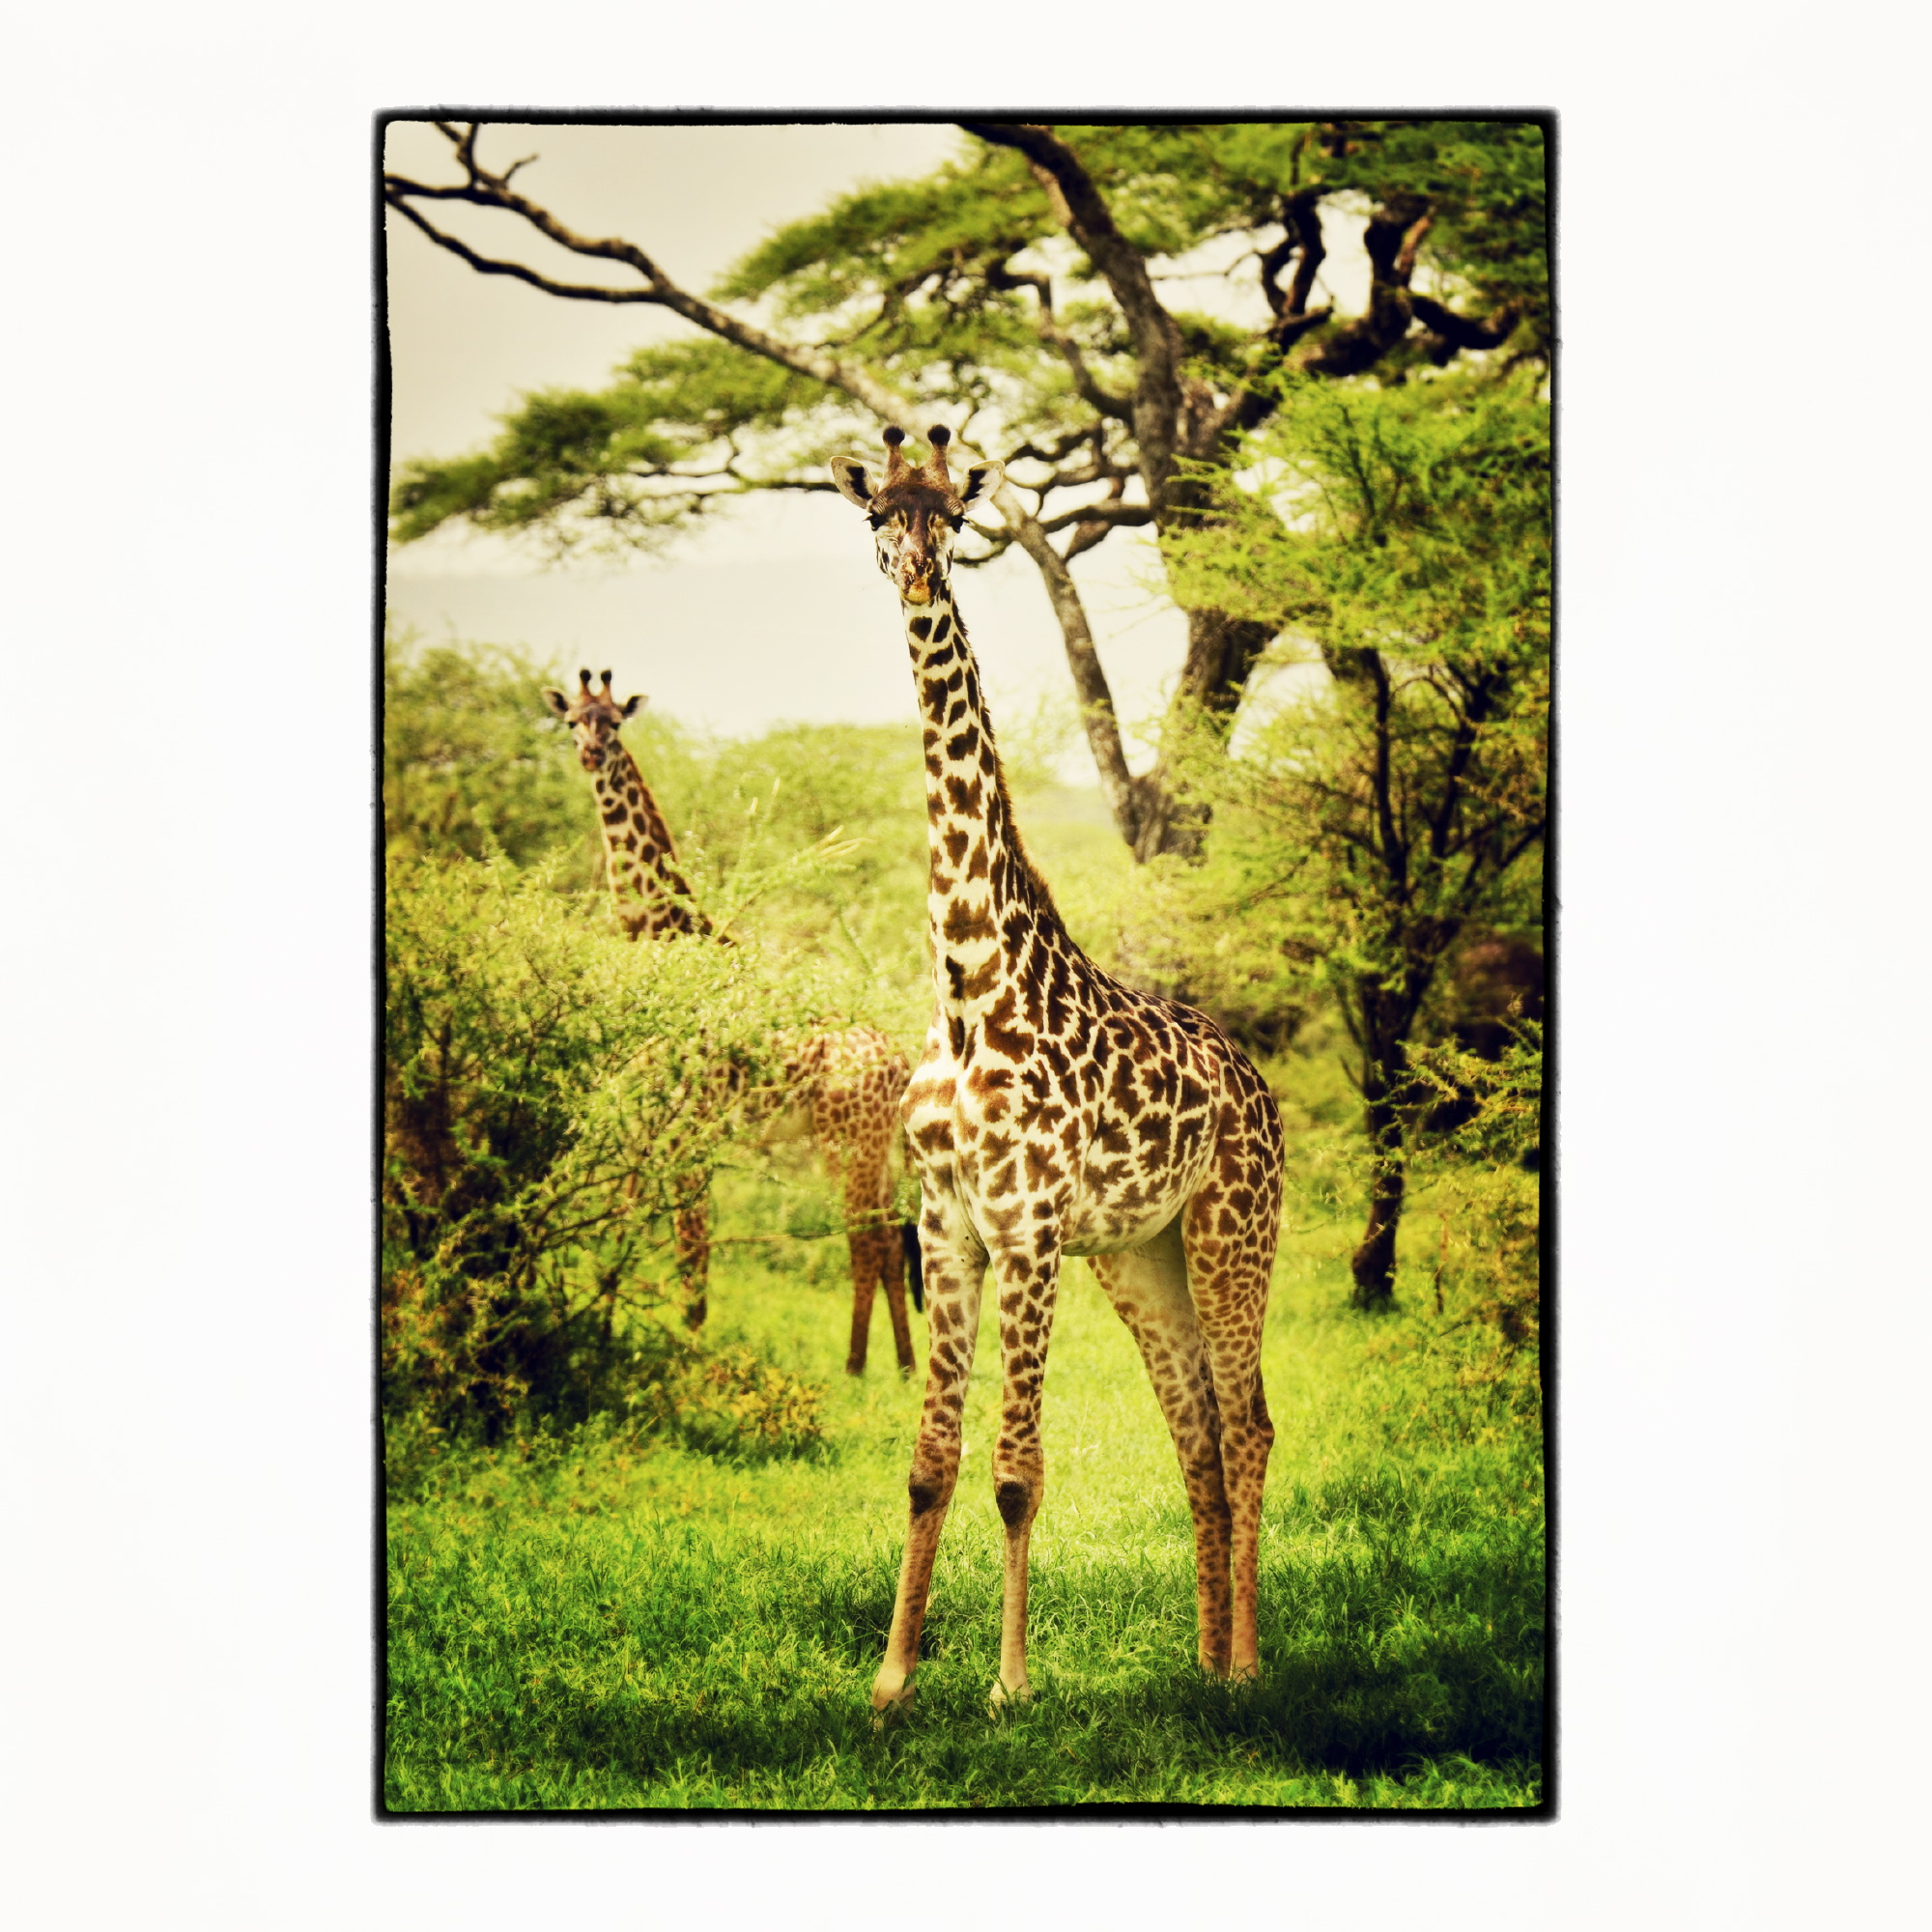 20x20 Portrait of Giraffes